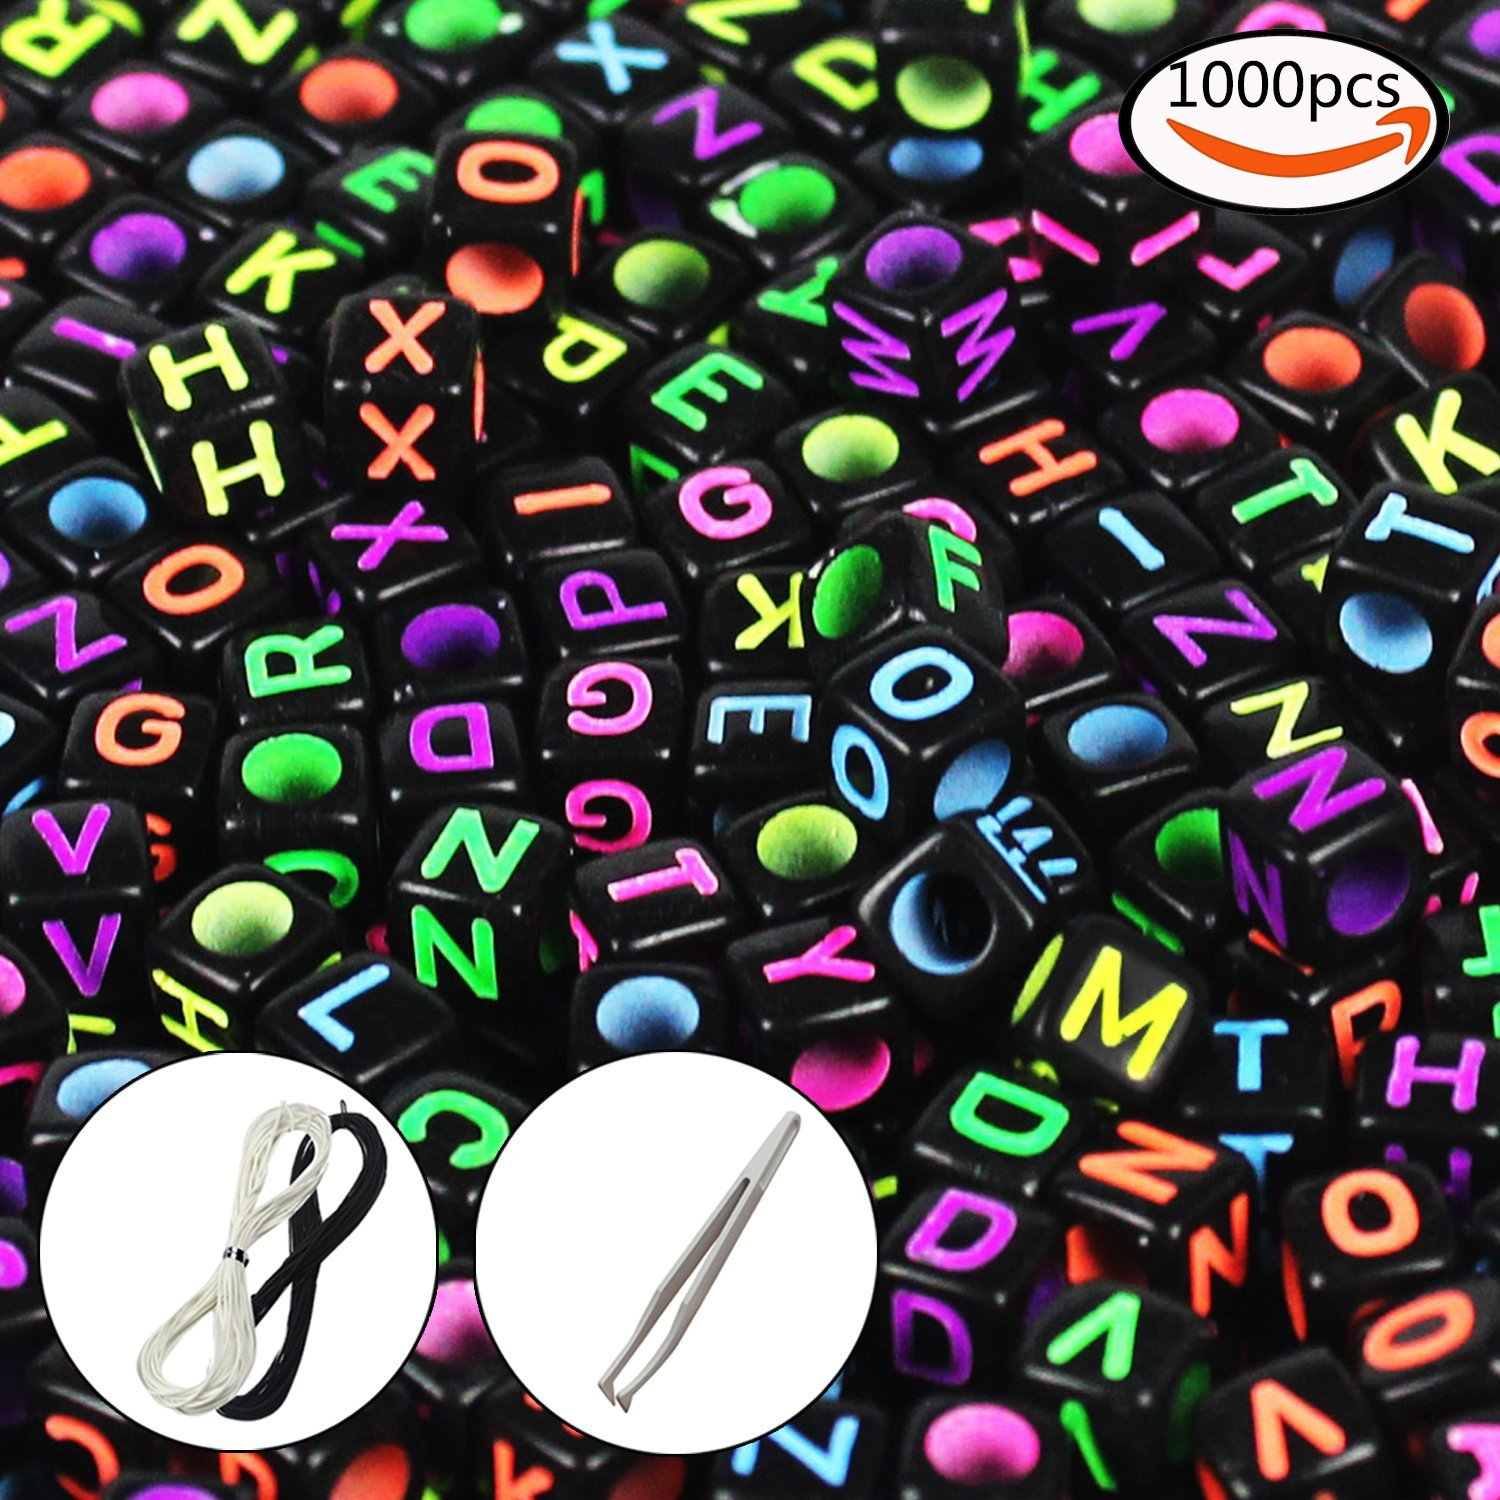 """JPSOR 1000 Pcs Letter Beads with 1 Pair of Tweezers 1 White and 1 Black Cord Black Alphabet Beads Mixed Color Alphabet """"A-z"""" Cube Beads for Jewelry Making for Kids DIY Bracelets, Necklaces"""